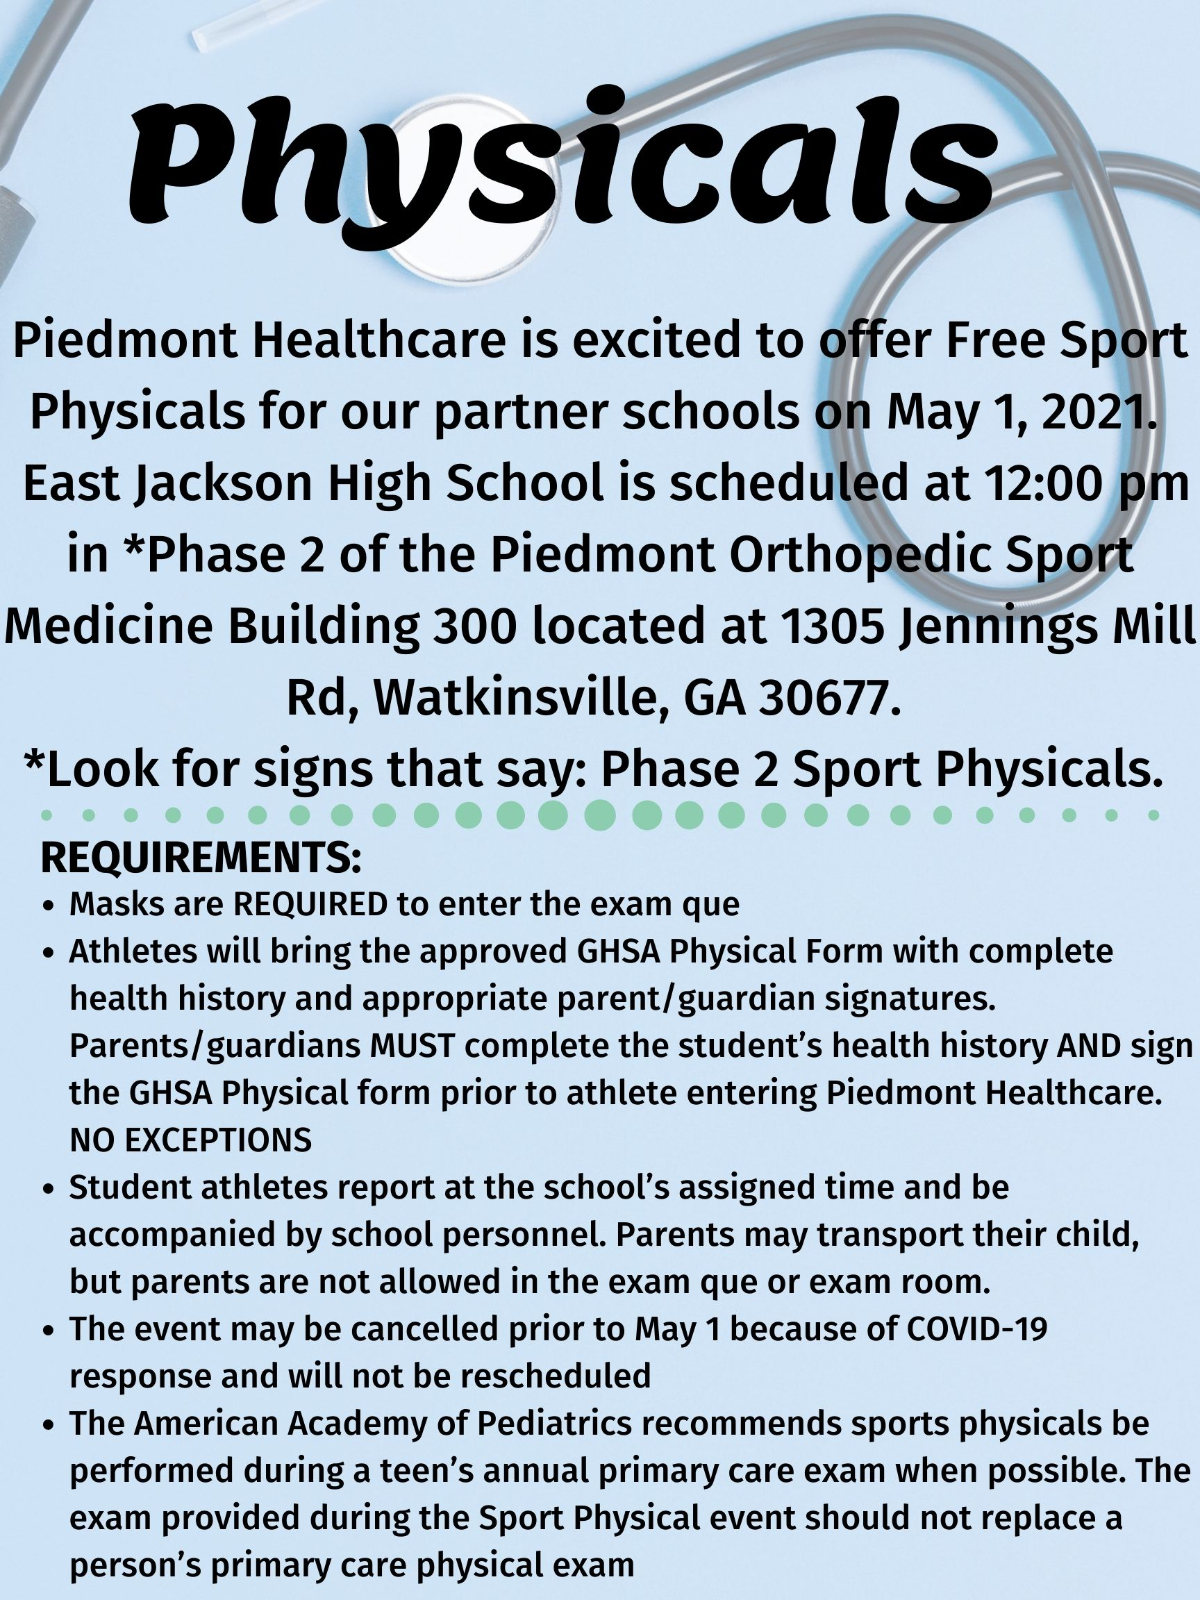 Piedmont Healthcare is excited to offer Free Sport Physicals for our partner schools on May 1, 2021. East Jackson High School is scheduled at 12_00 pm in _Phase 2 of the Piedmont Orthopedic Sport Medicine Buil (1)